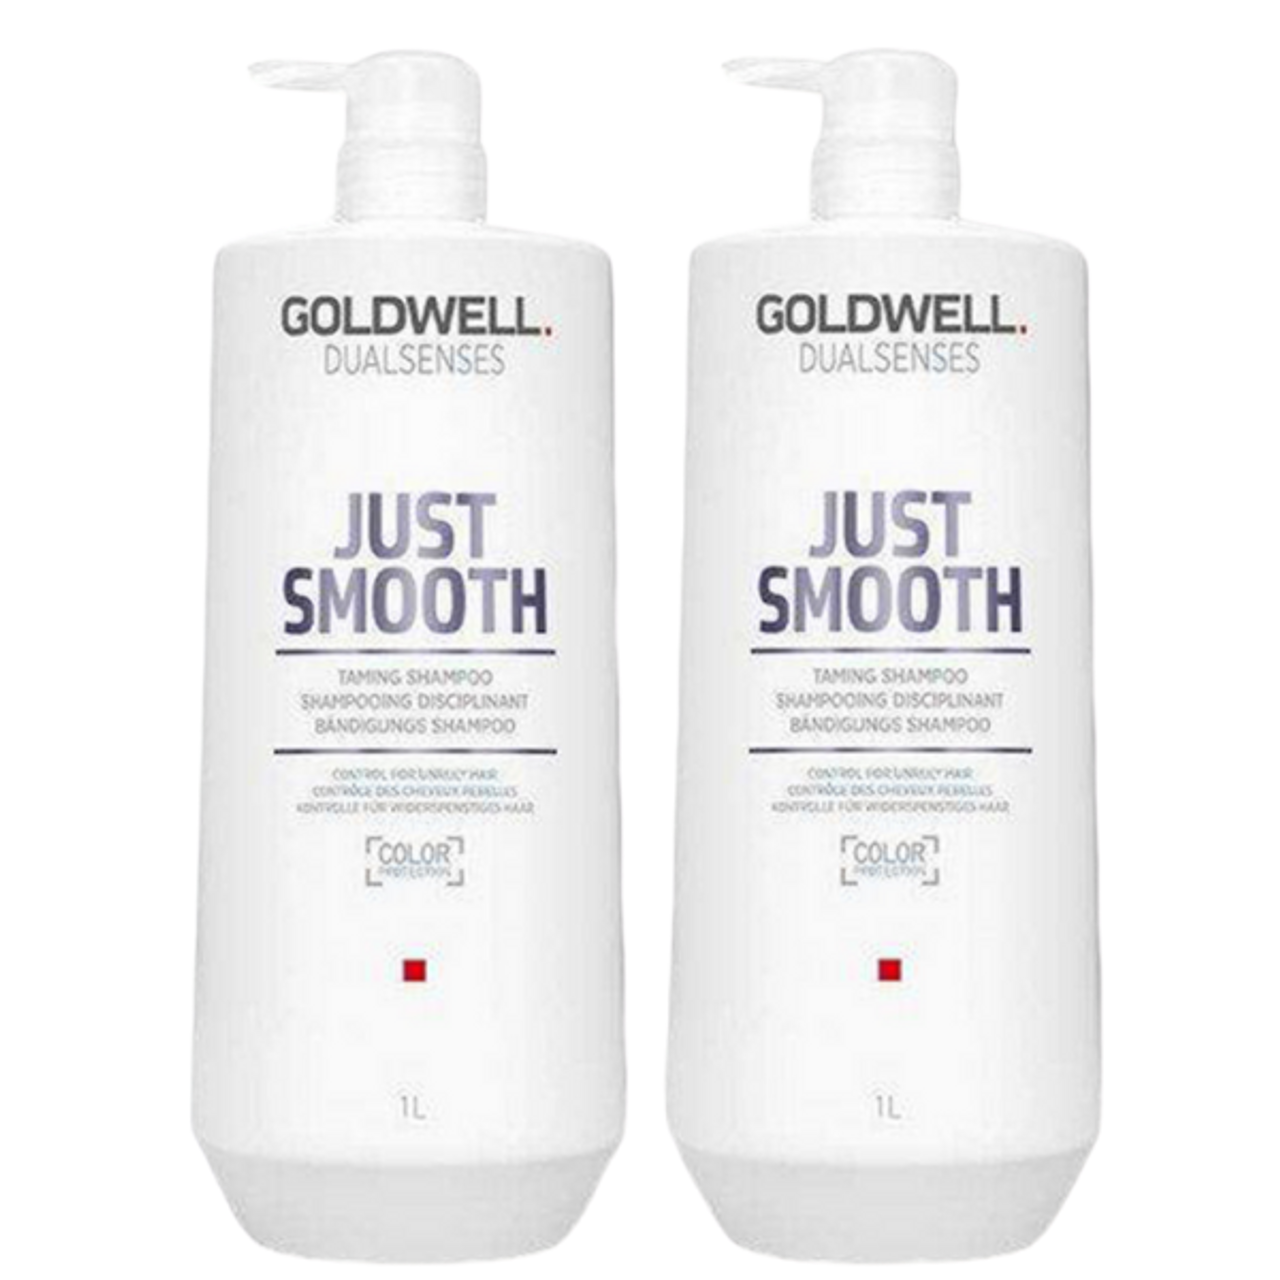 Goldwell Dual Senses Just Smooth Shampoo & Conditioner Liter Duo